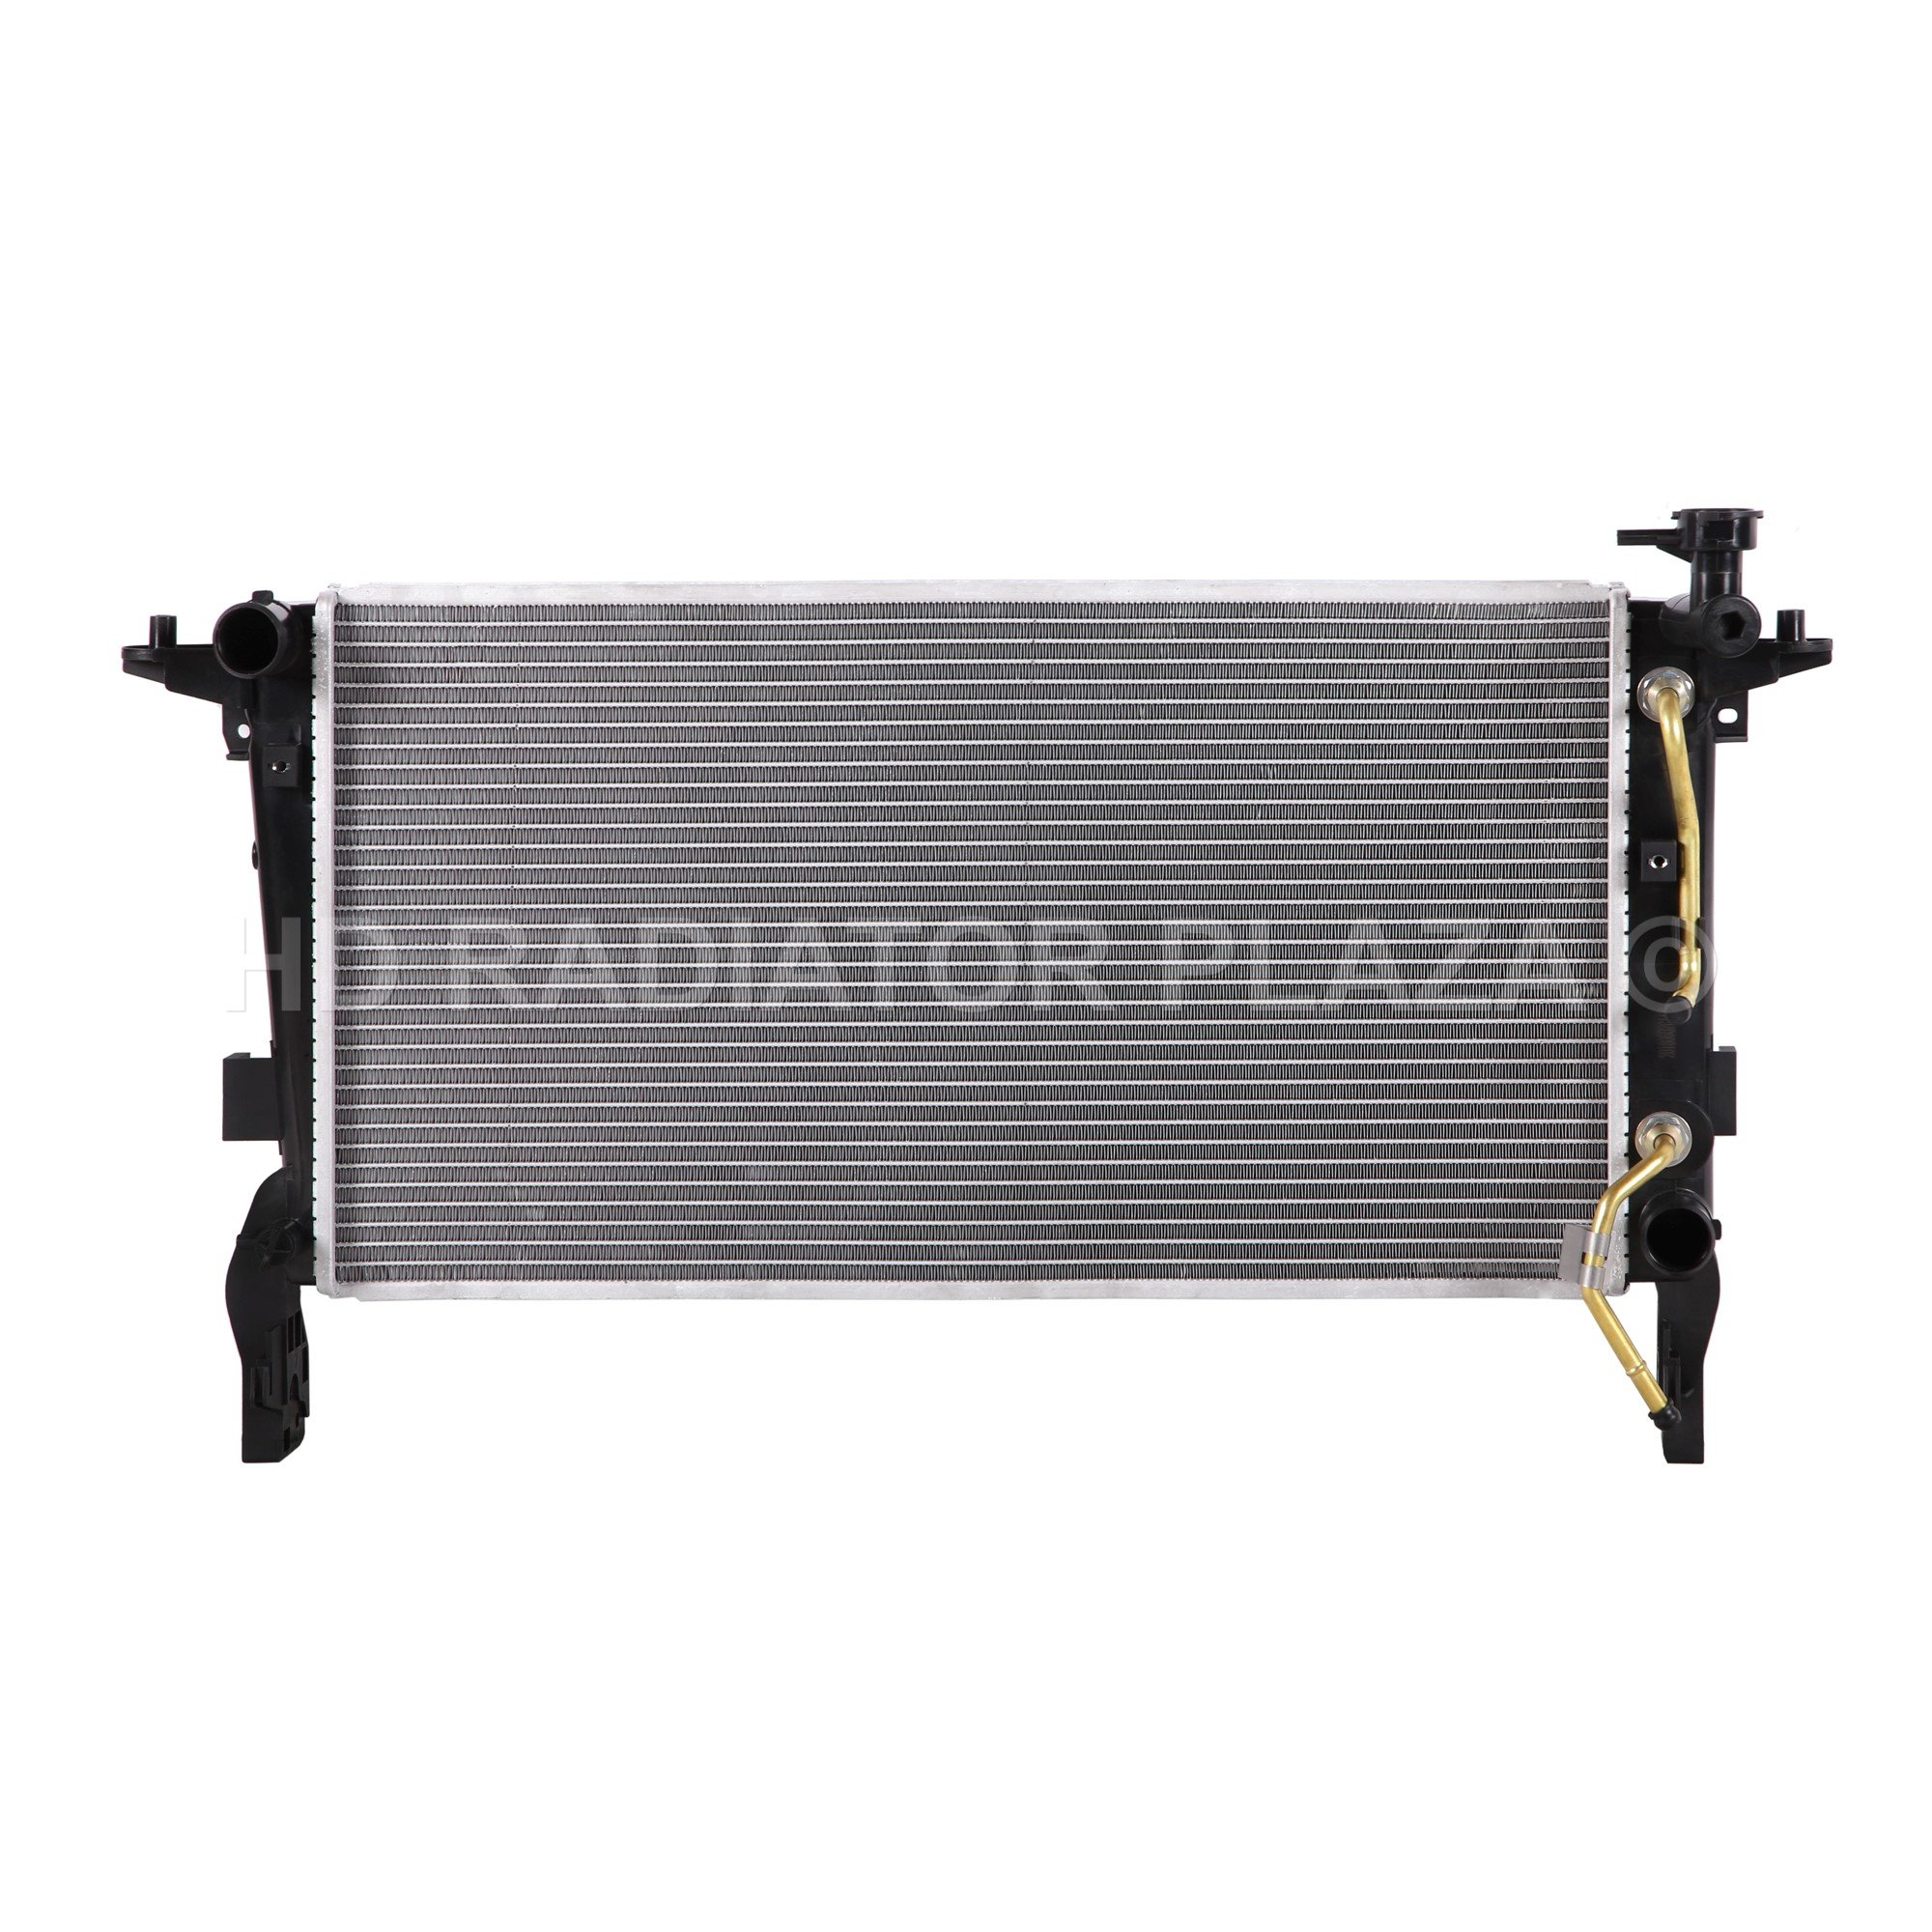 Radiator for 10-12 Hyundai Genesis Coupe, 2.0L l4